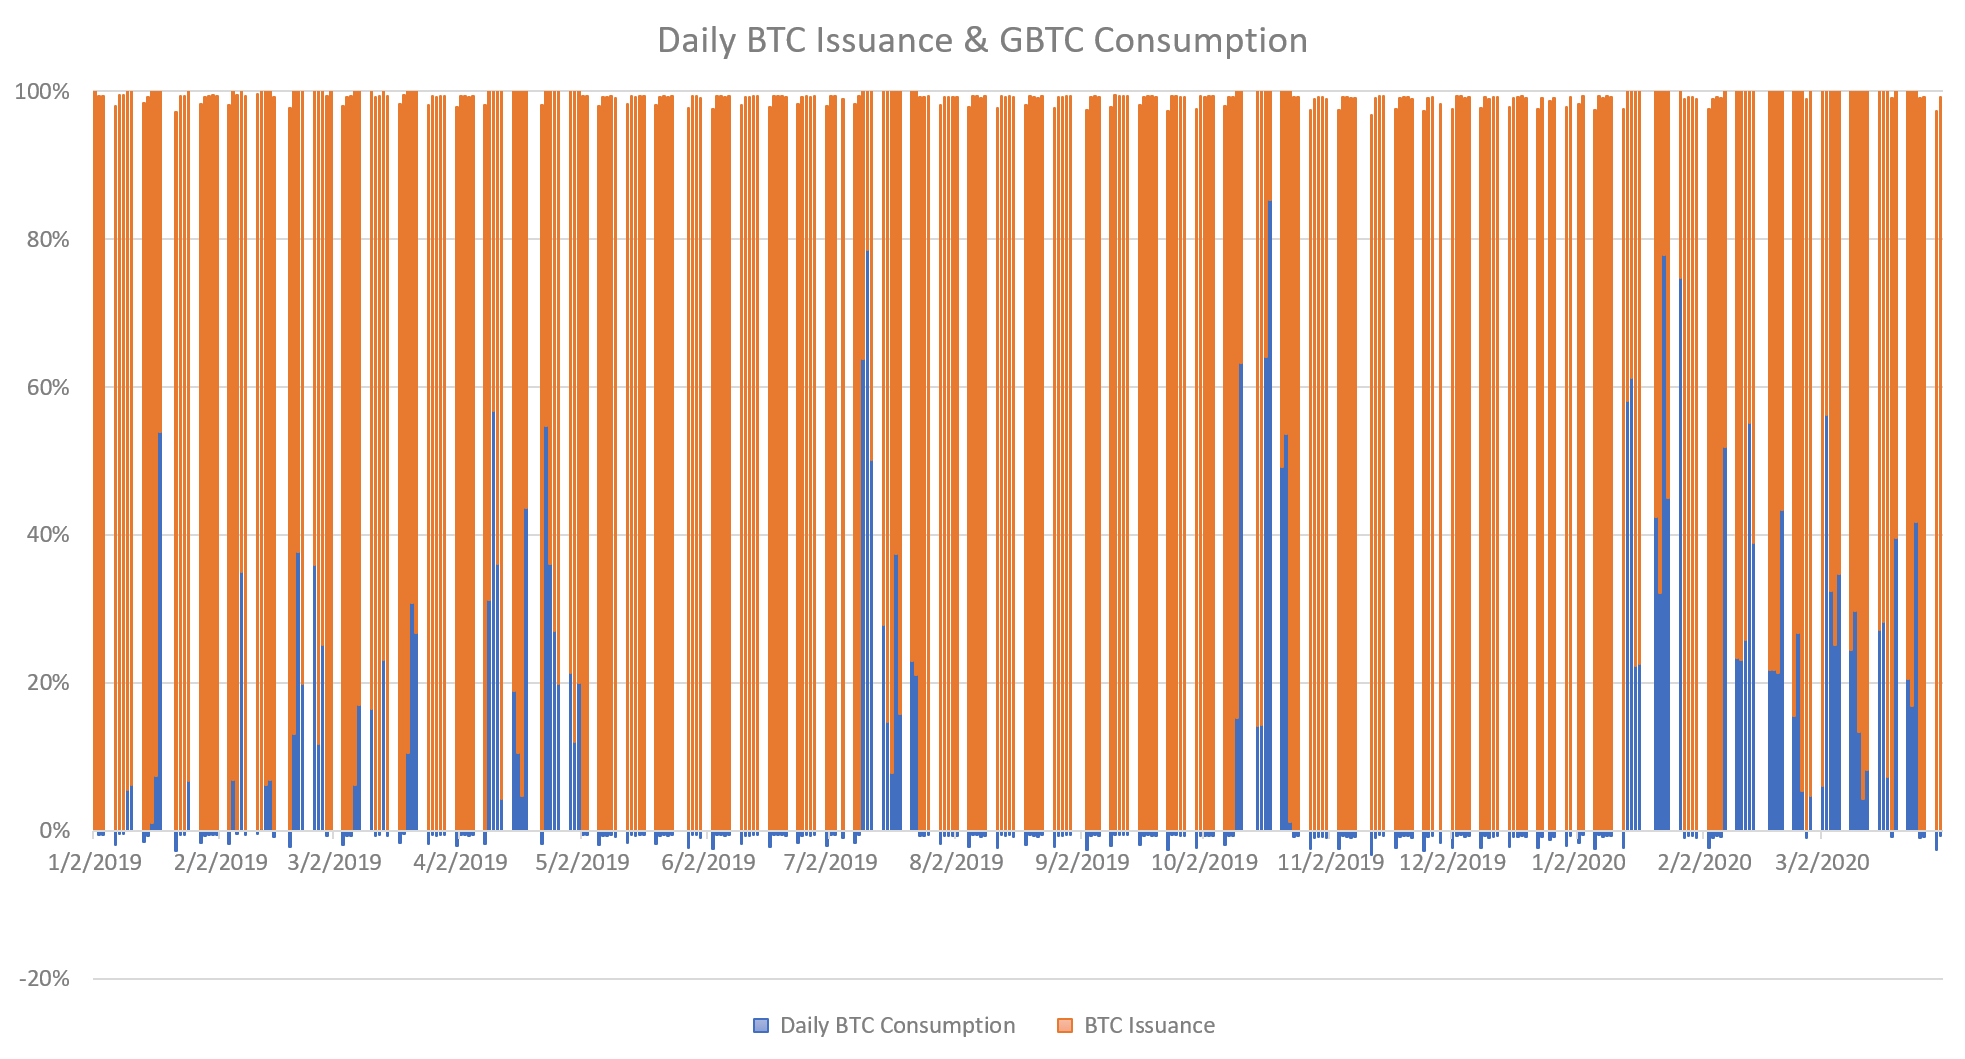 Daily BTC Issuance & GBTC Consumption. Source: Cointelegraph, Grayscale.